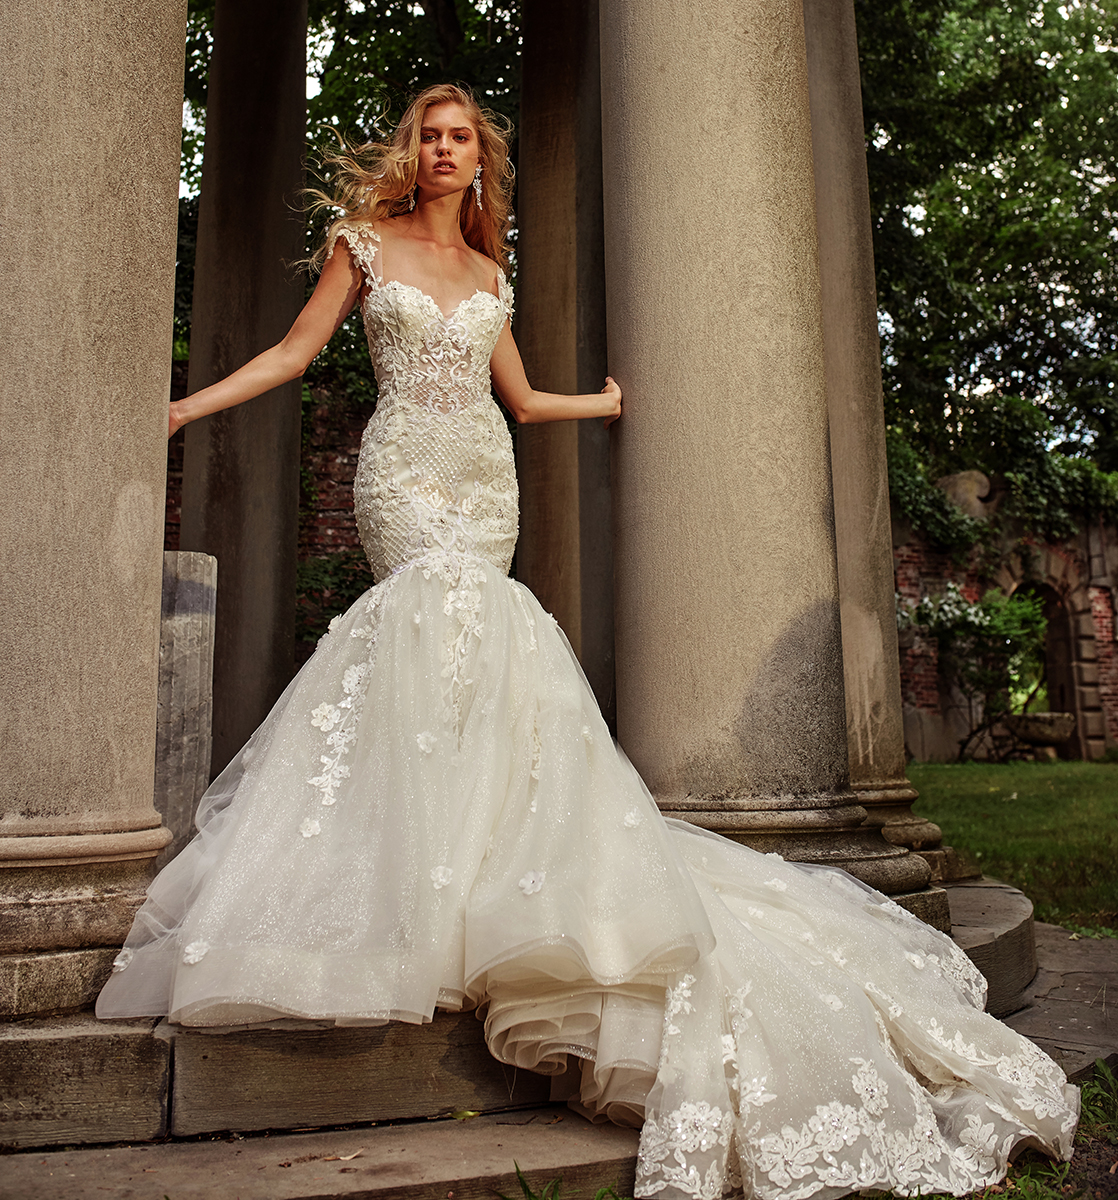 Couture Designer Wedding Gowns: Bridal Gowns By Eve Of Milady